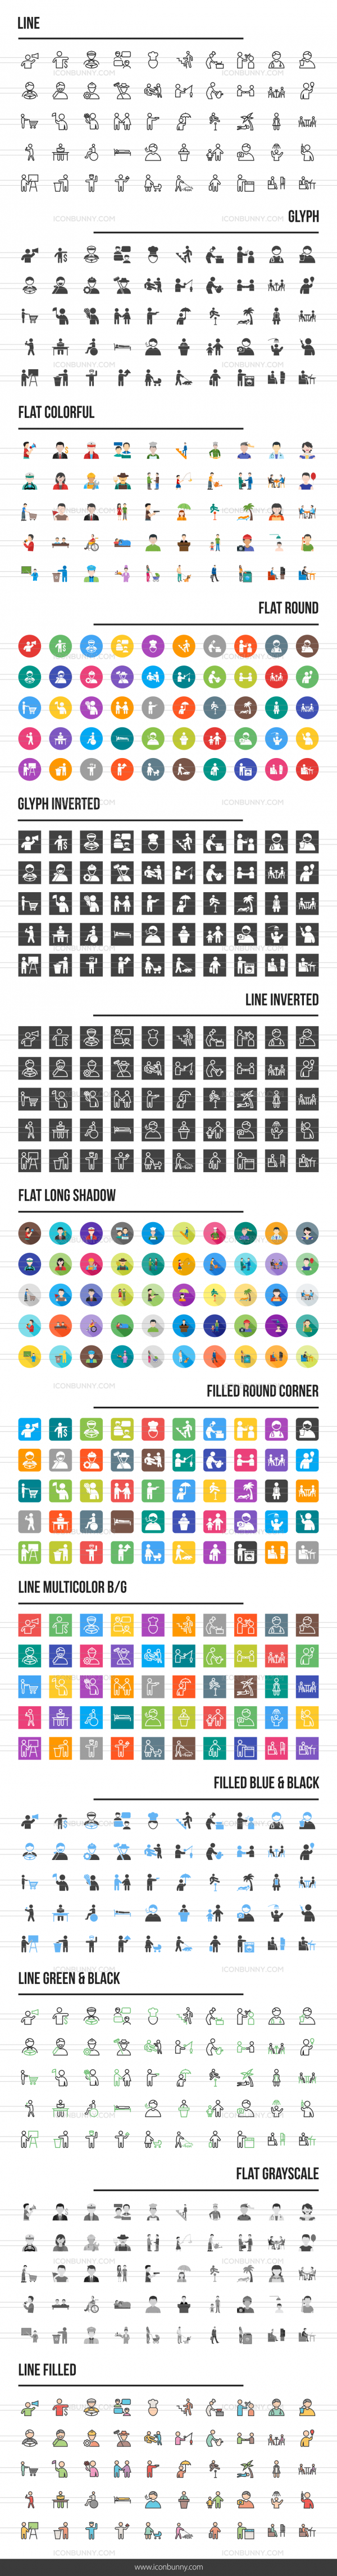 Activities Icons Bundle - Preview - IconBunny